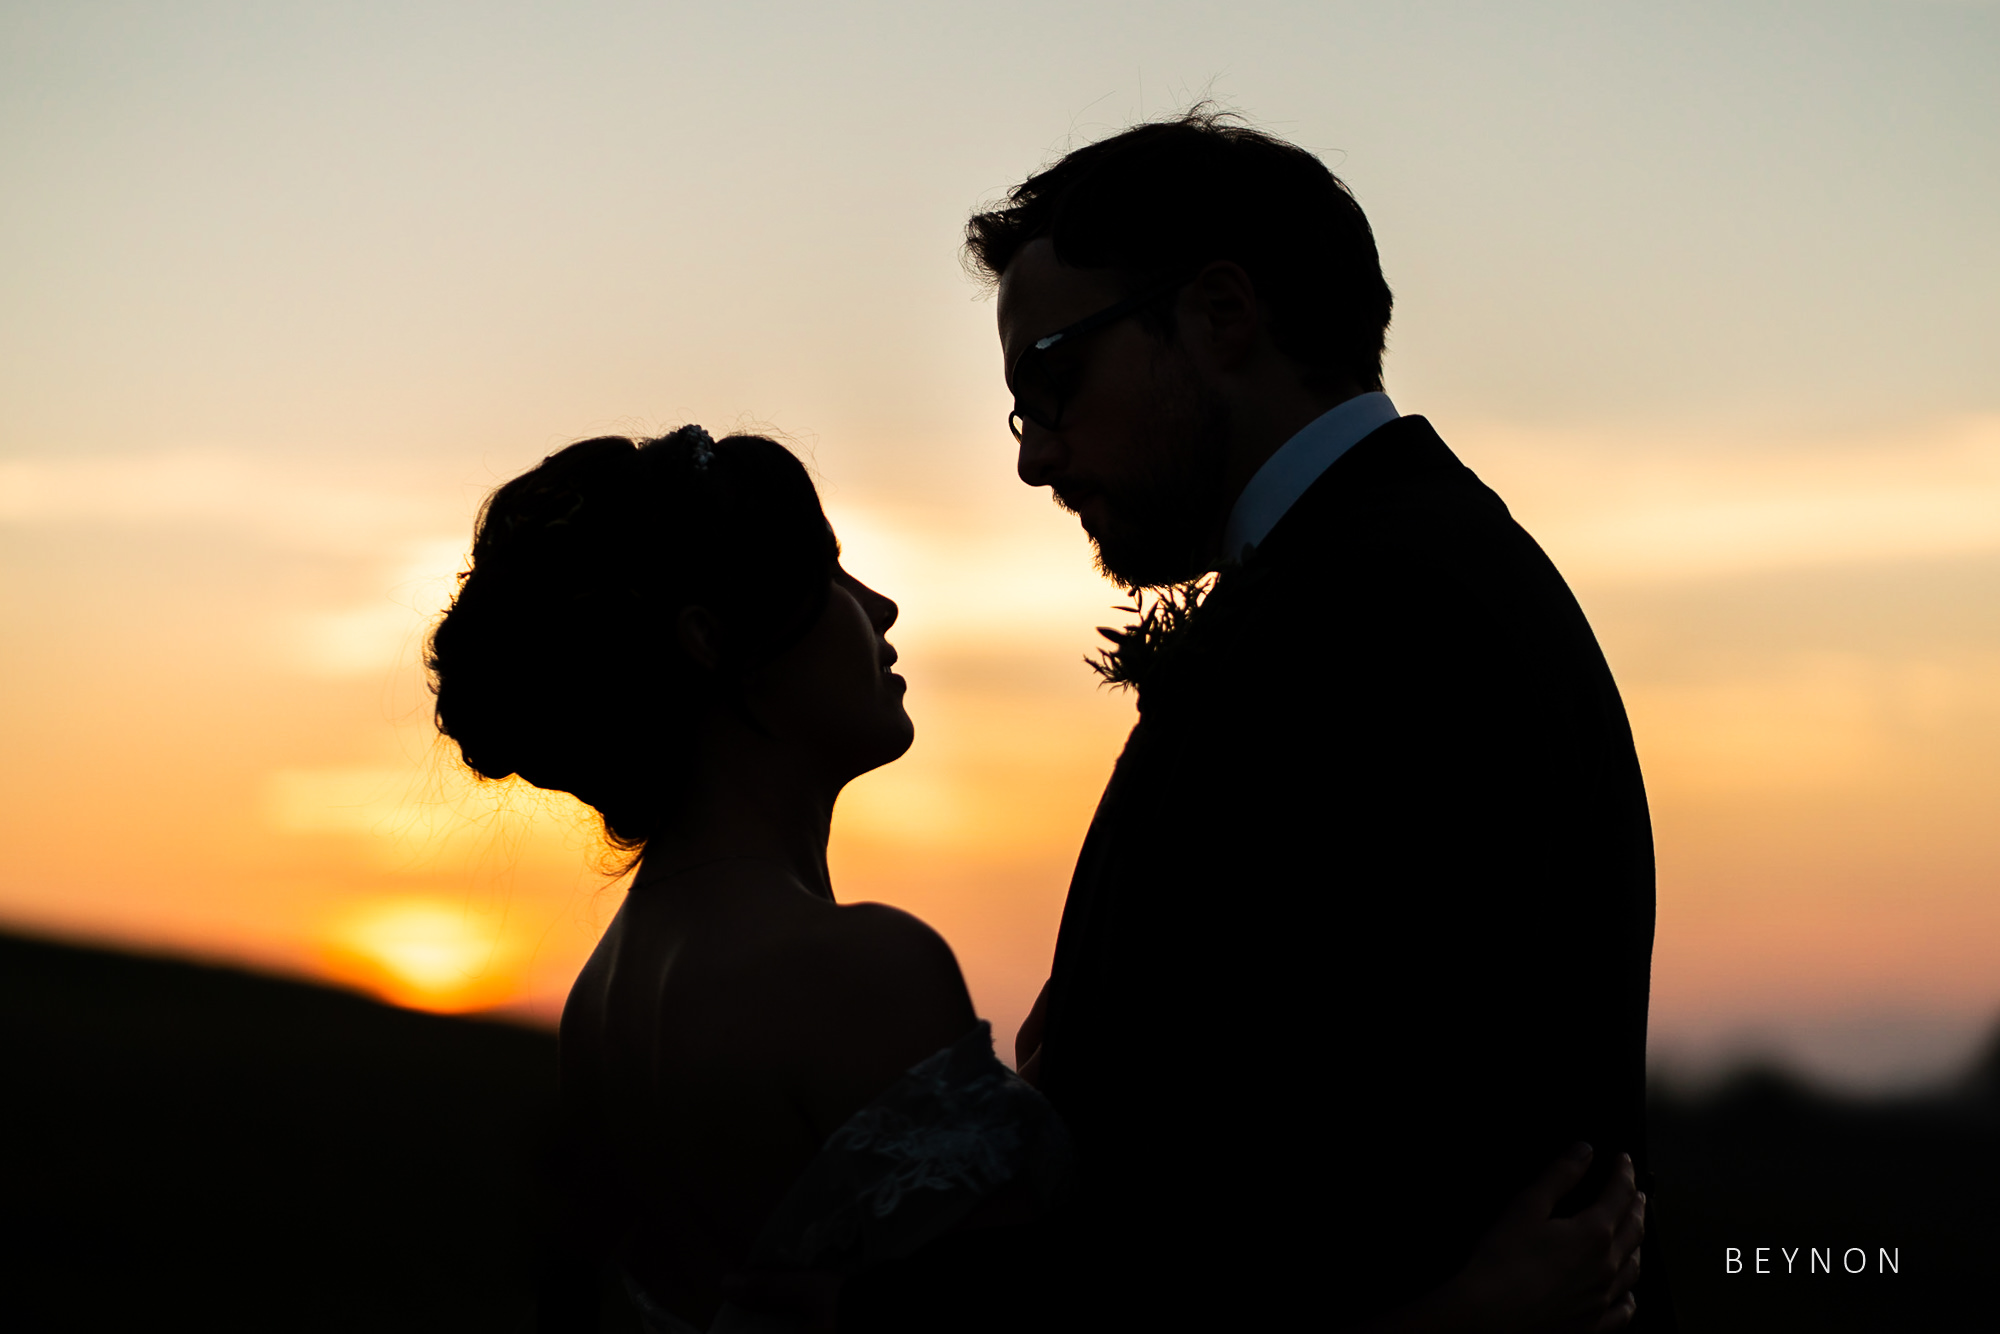 Silhouette photograph using 85mm lens